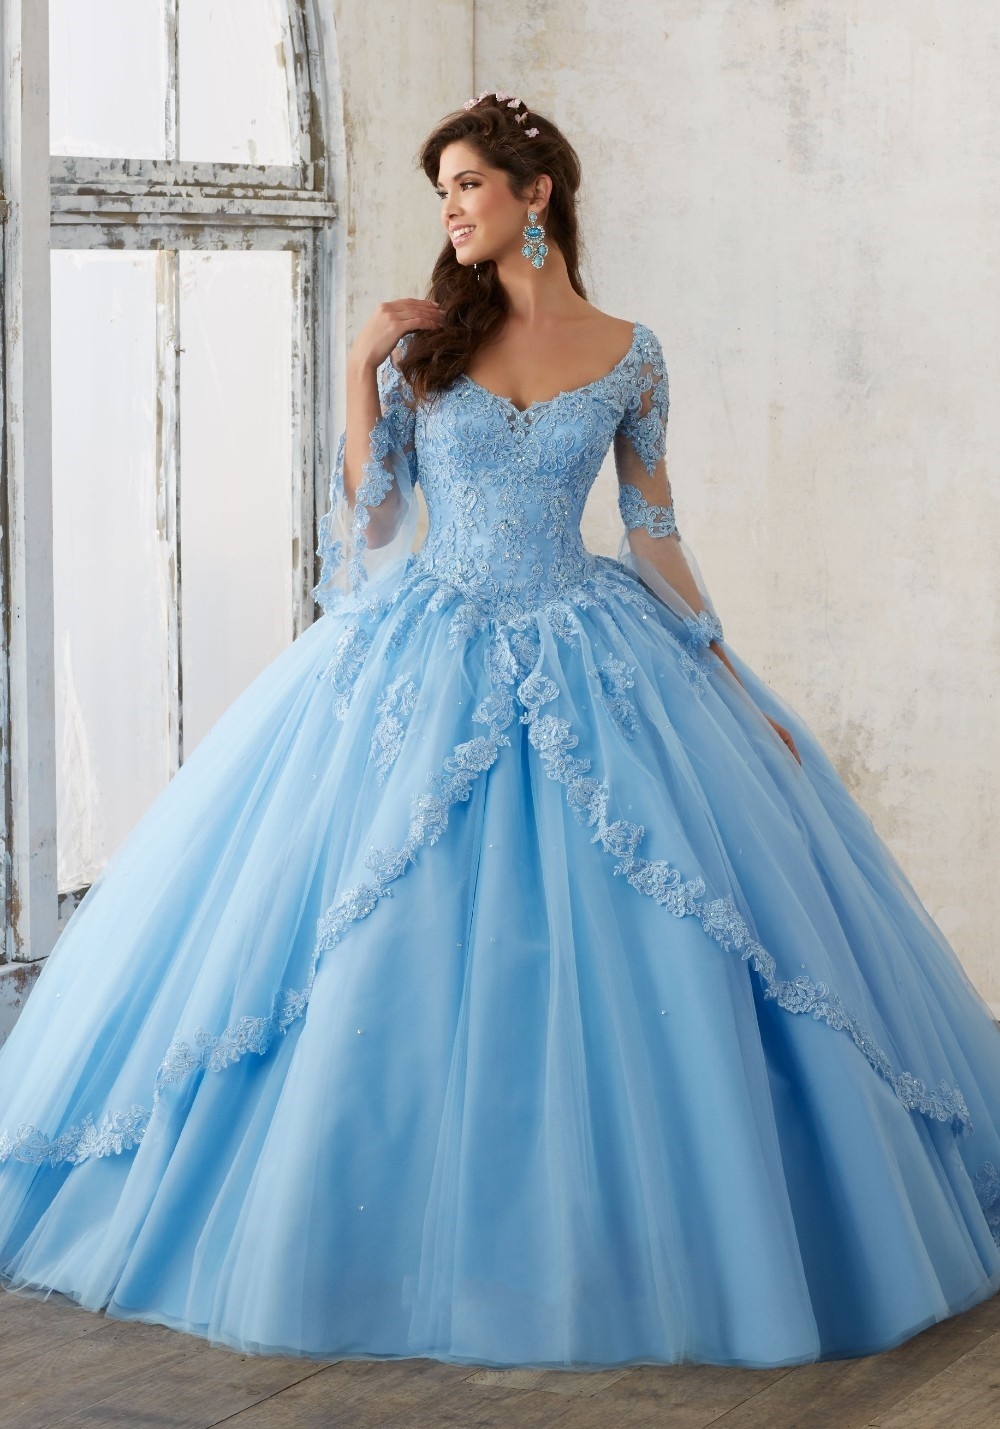 Long Sleeve Peach Pink Blue Quinceanera Dress Lace Ball Gown Sweet ...